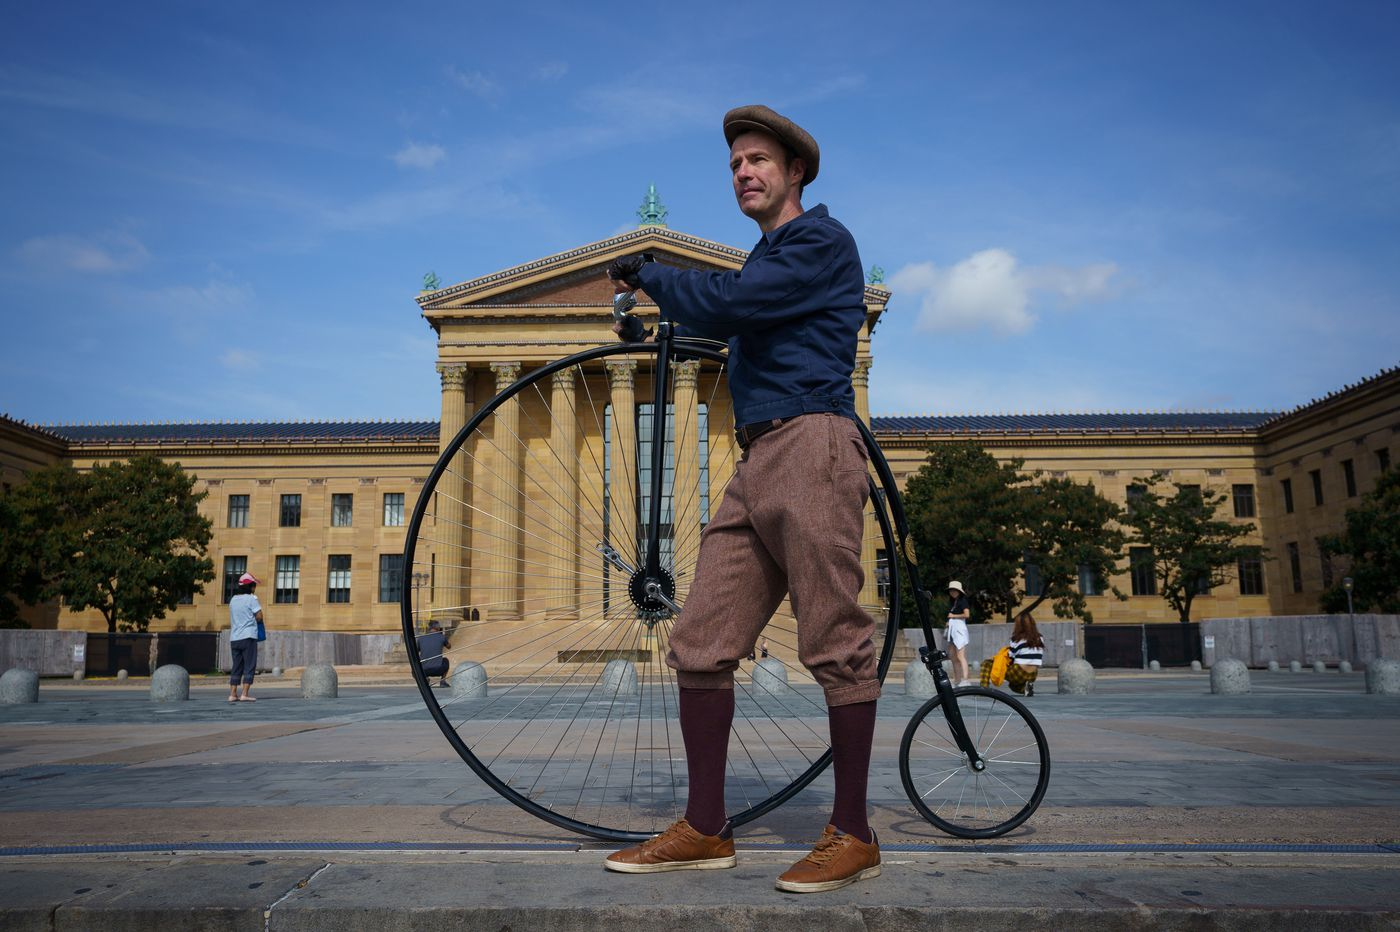 Amid bicyclists on the Schuylkill, Philly attorney rides a penny-farthing | We The People